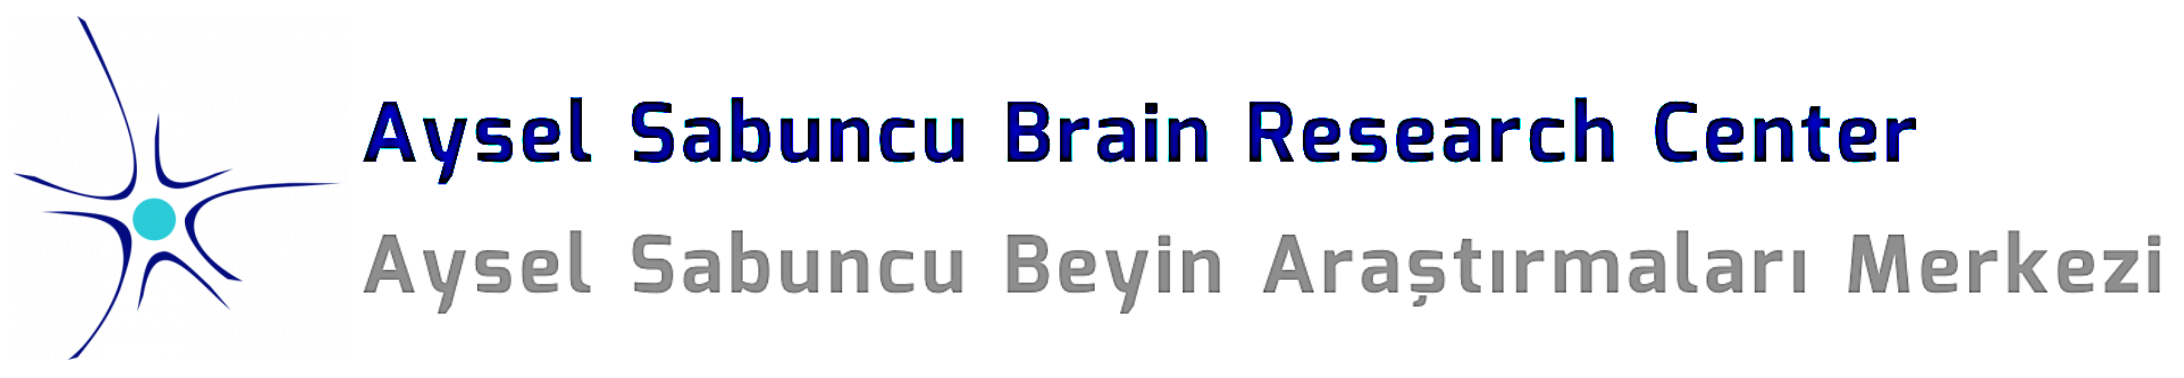 Aysel Sabuncu Brain Research Center, Bilkent University